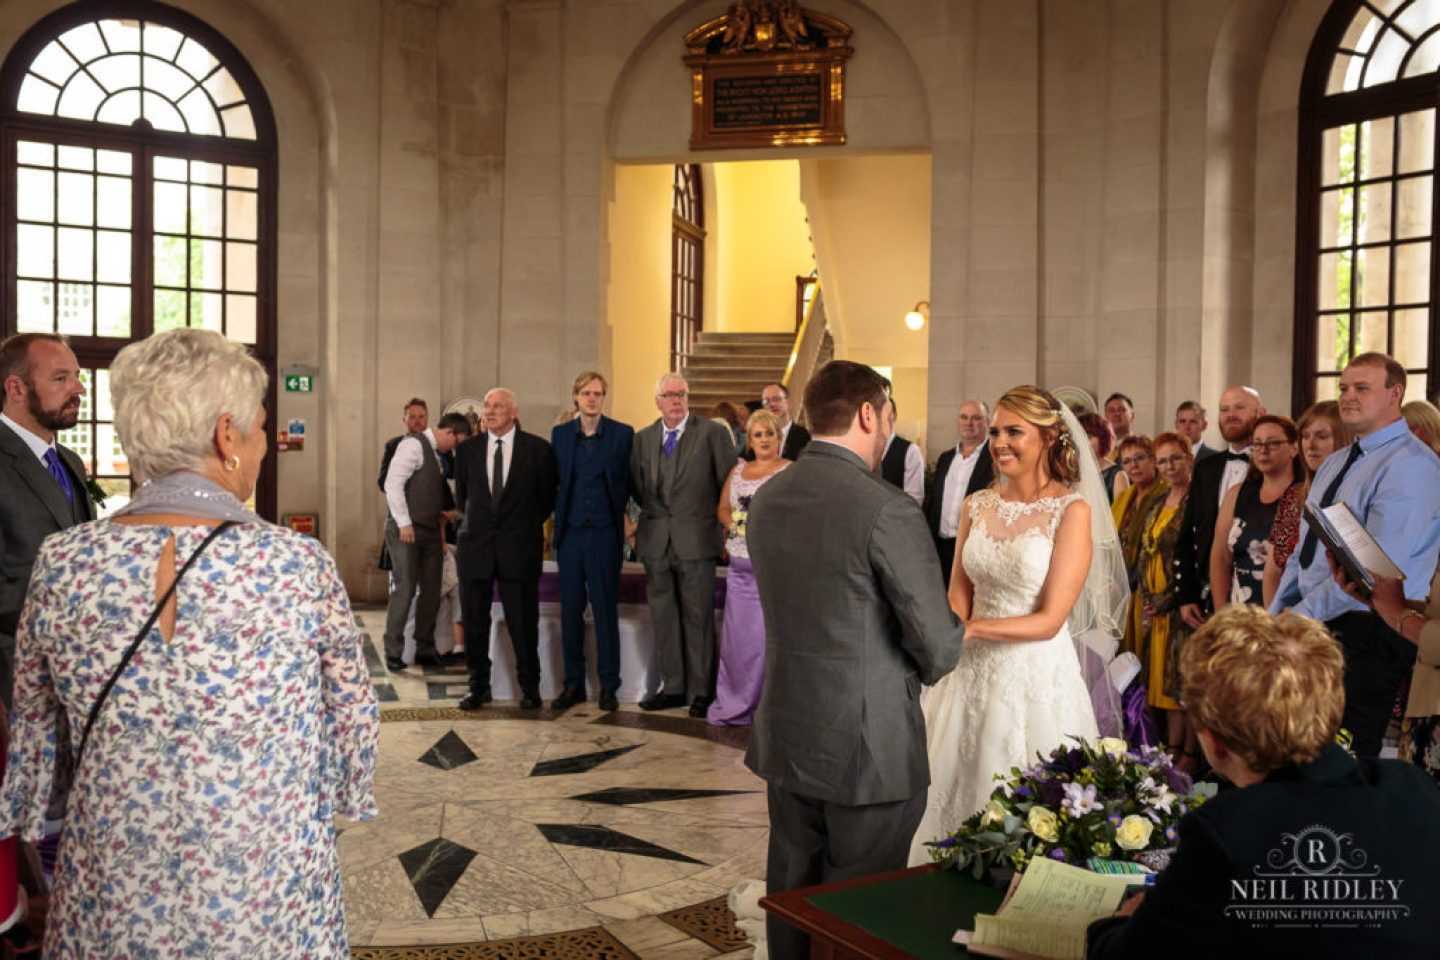 Lancaster Wedding Photographer - Bride and Groom exchange vows at Ashton Memorial Lancaster